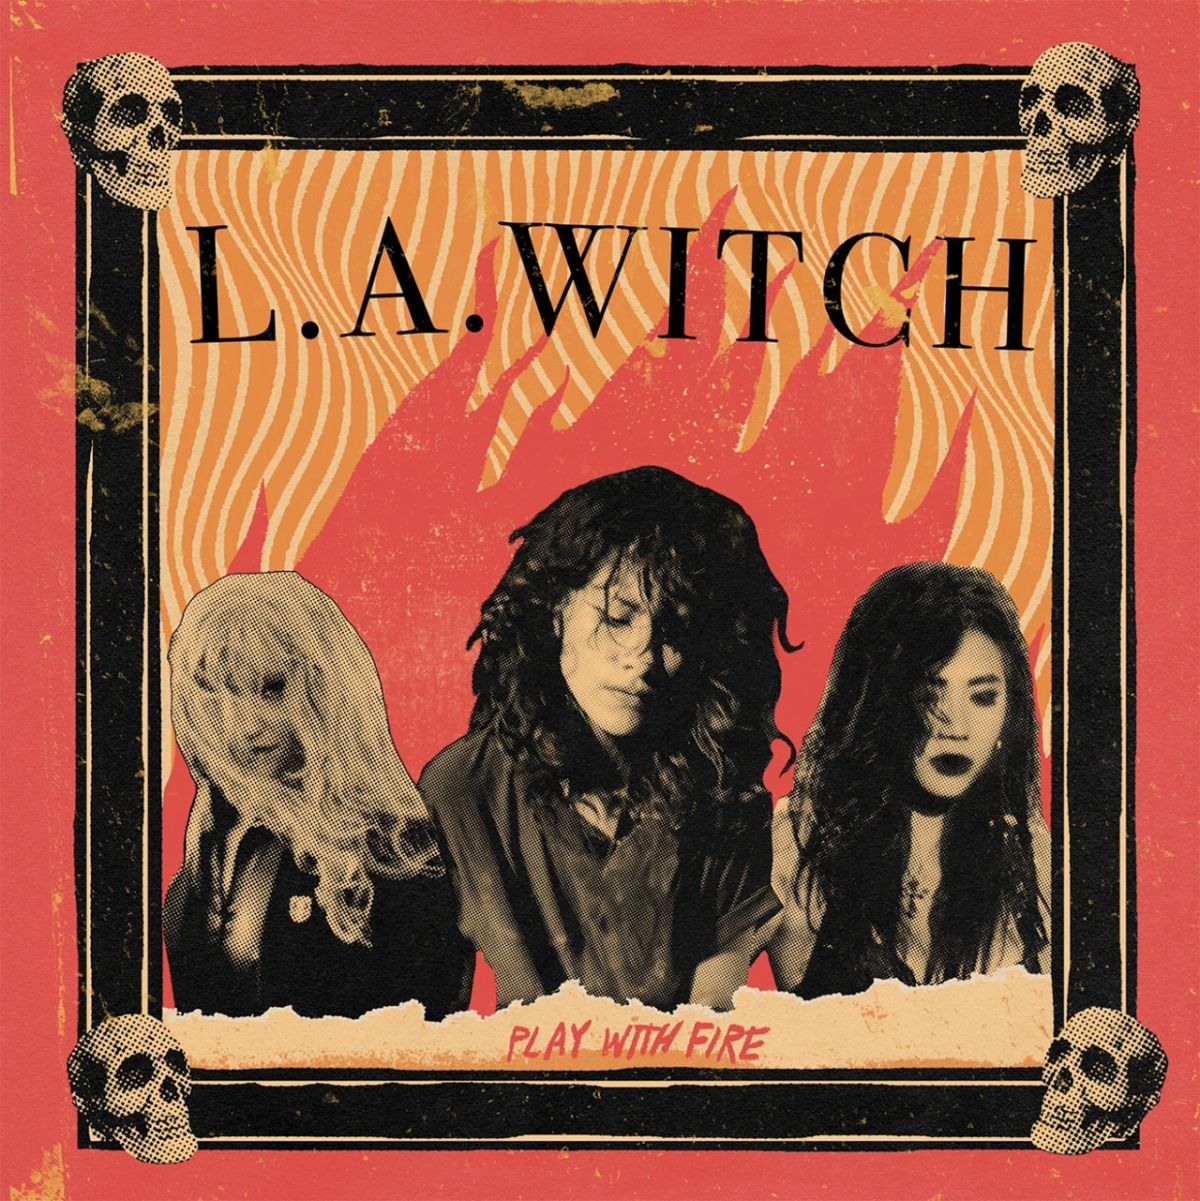 LA Witch Play With Fire